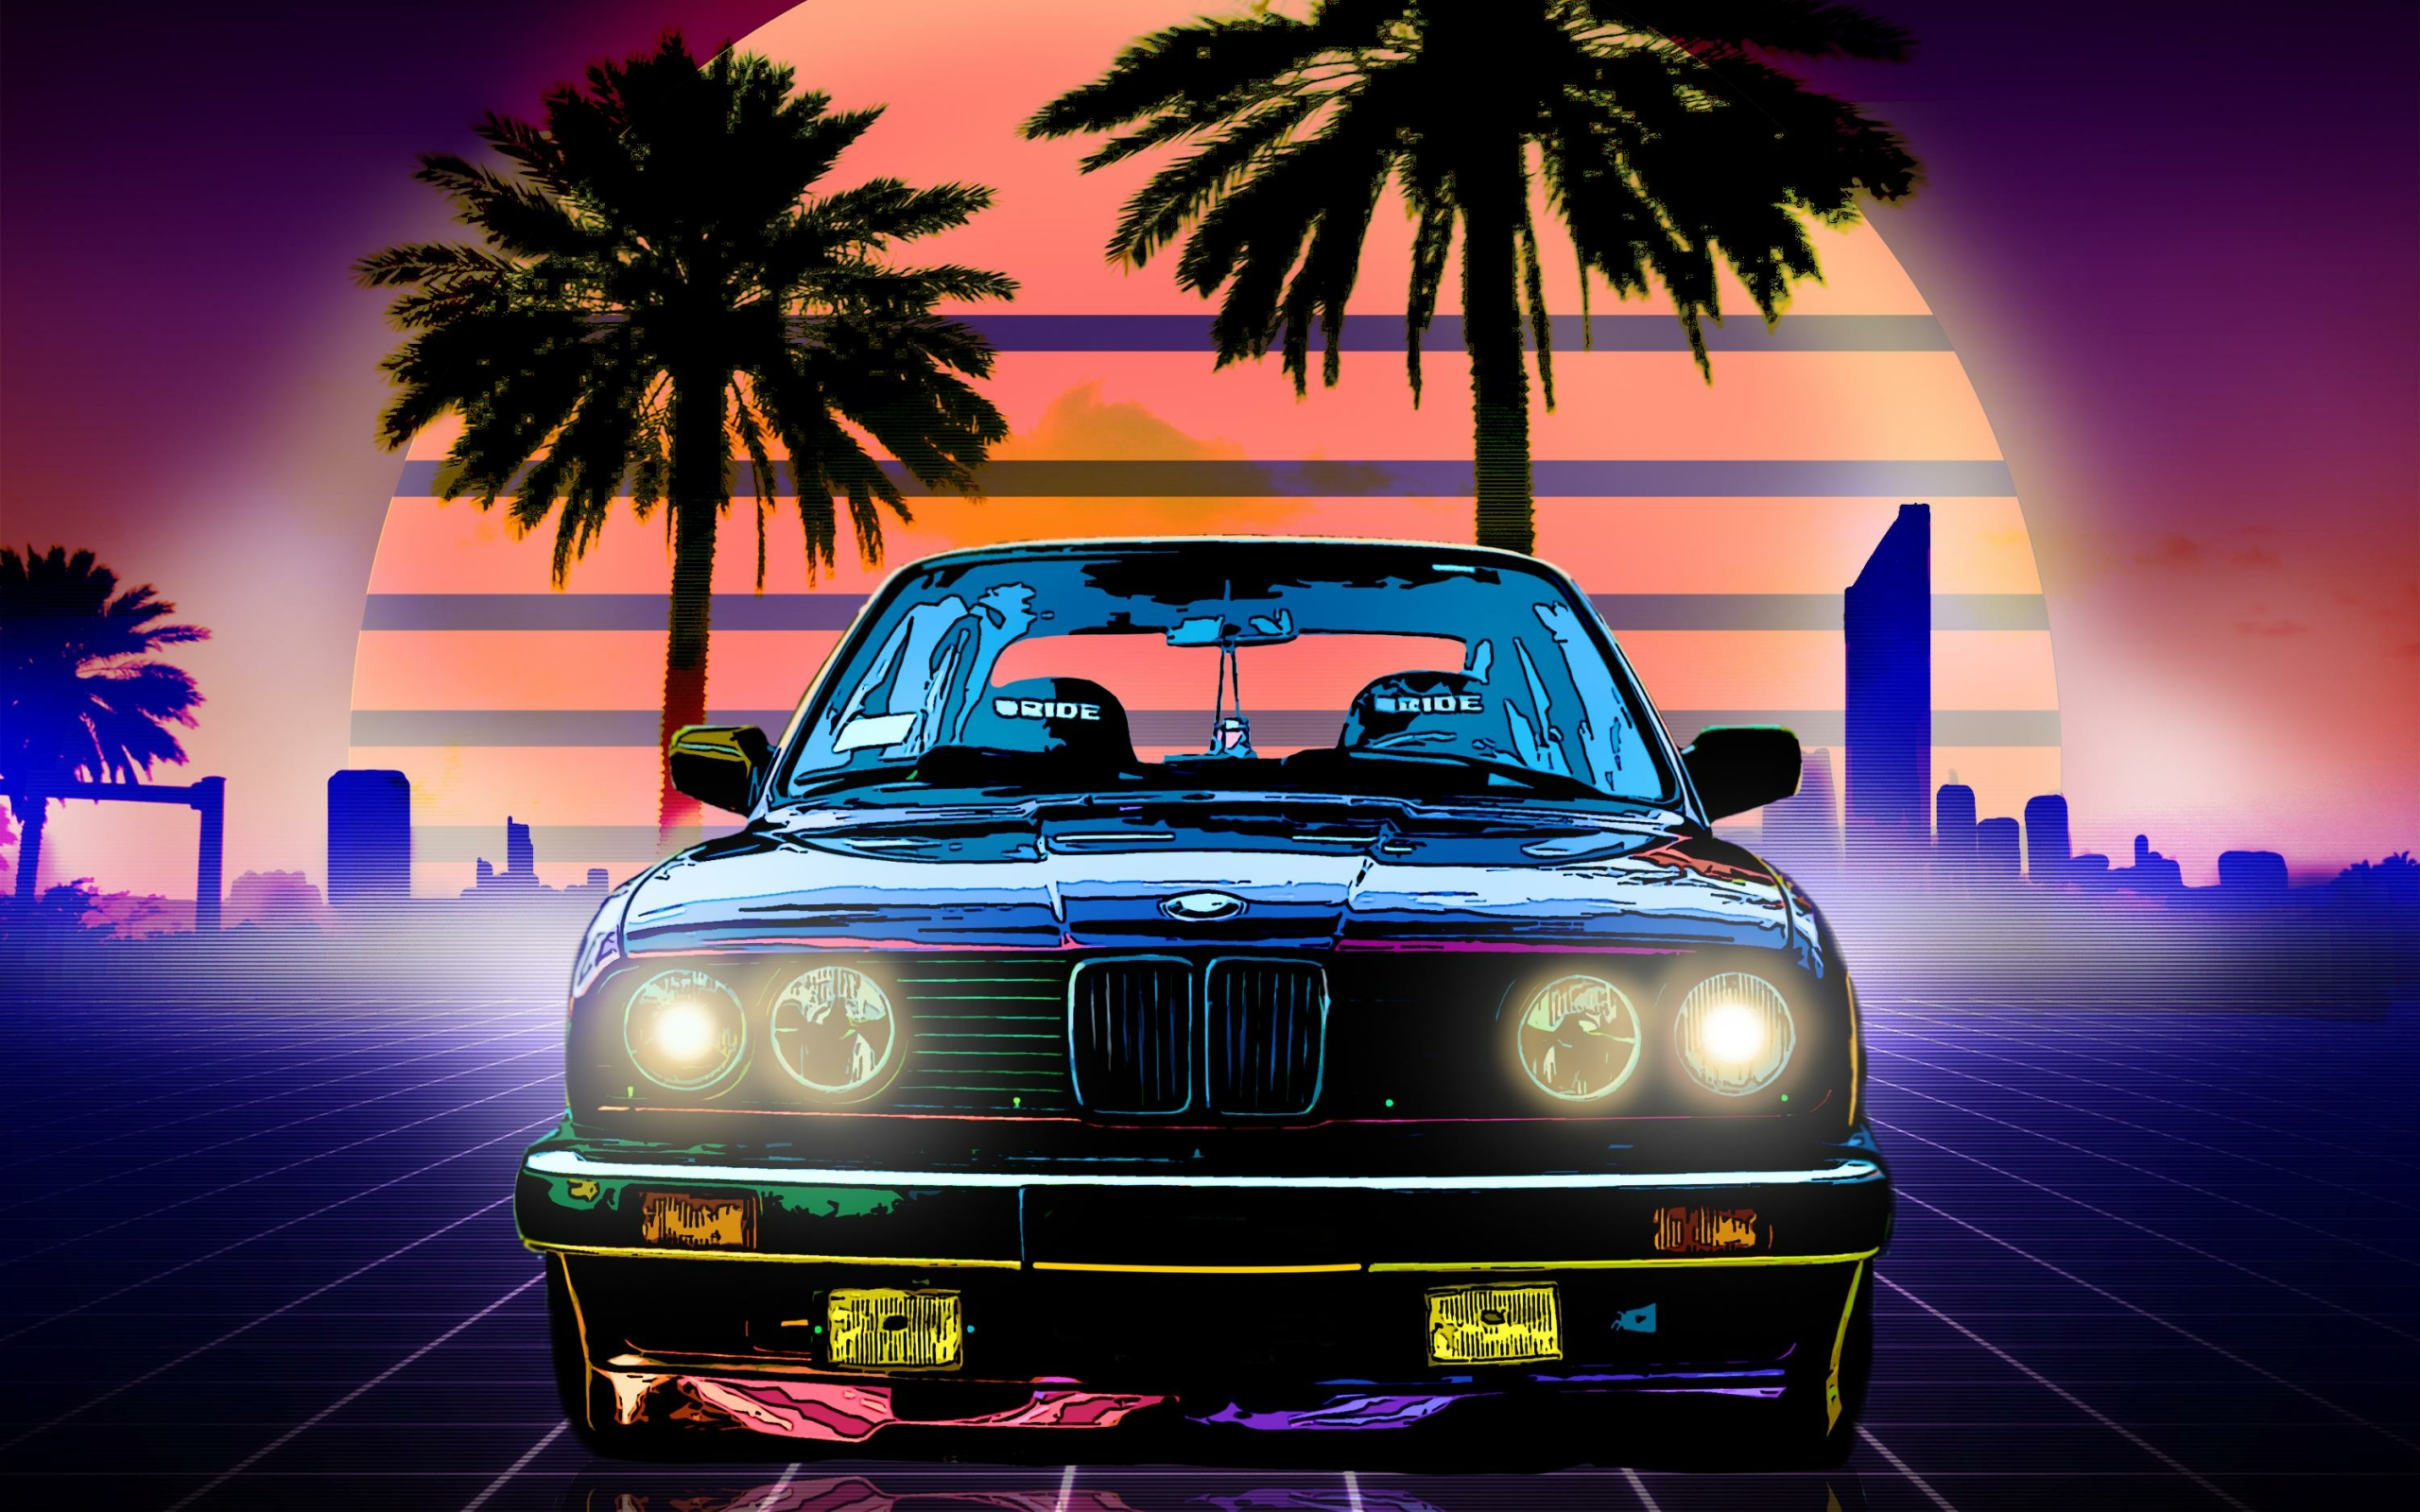 Street Art 4k Hd Desktop Wallpaper For 4k Ultra Hd Tv: Bmw Retro Style, HD 4K Wallpaper